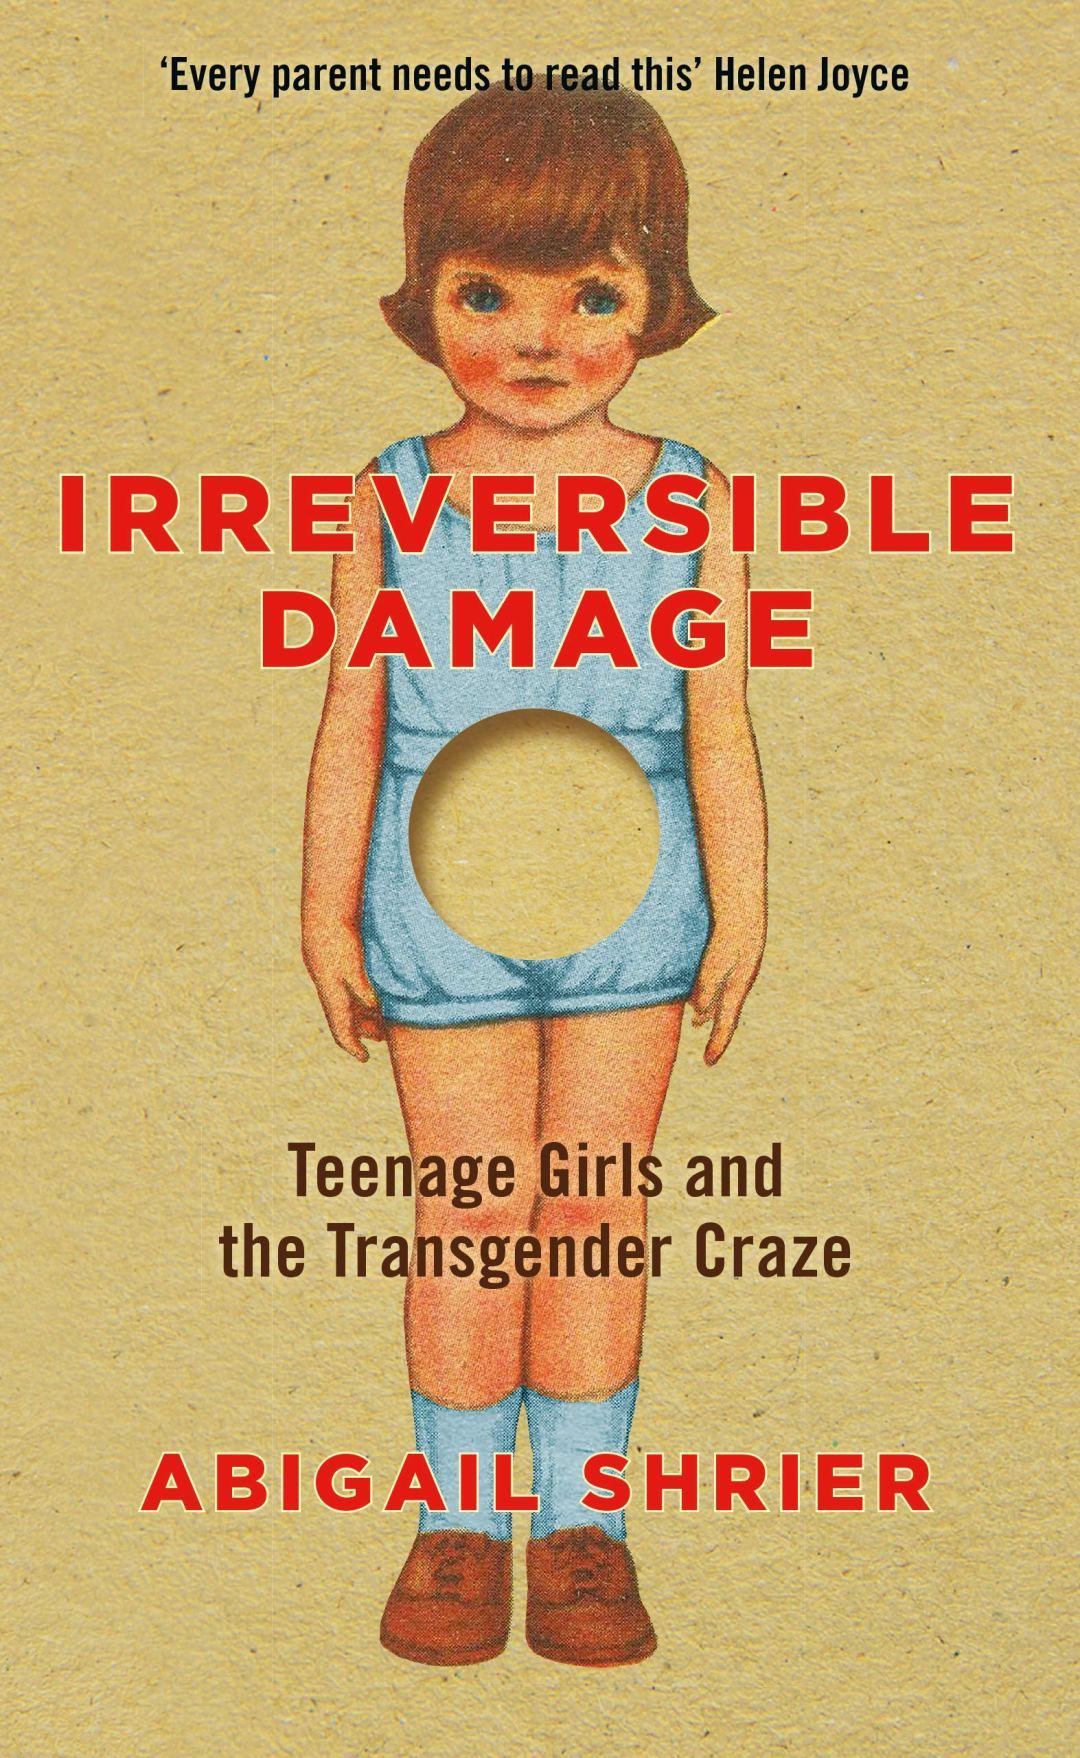 Irreversible Damage book cover showing a girl with a blank circle cut out of her midriff